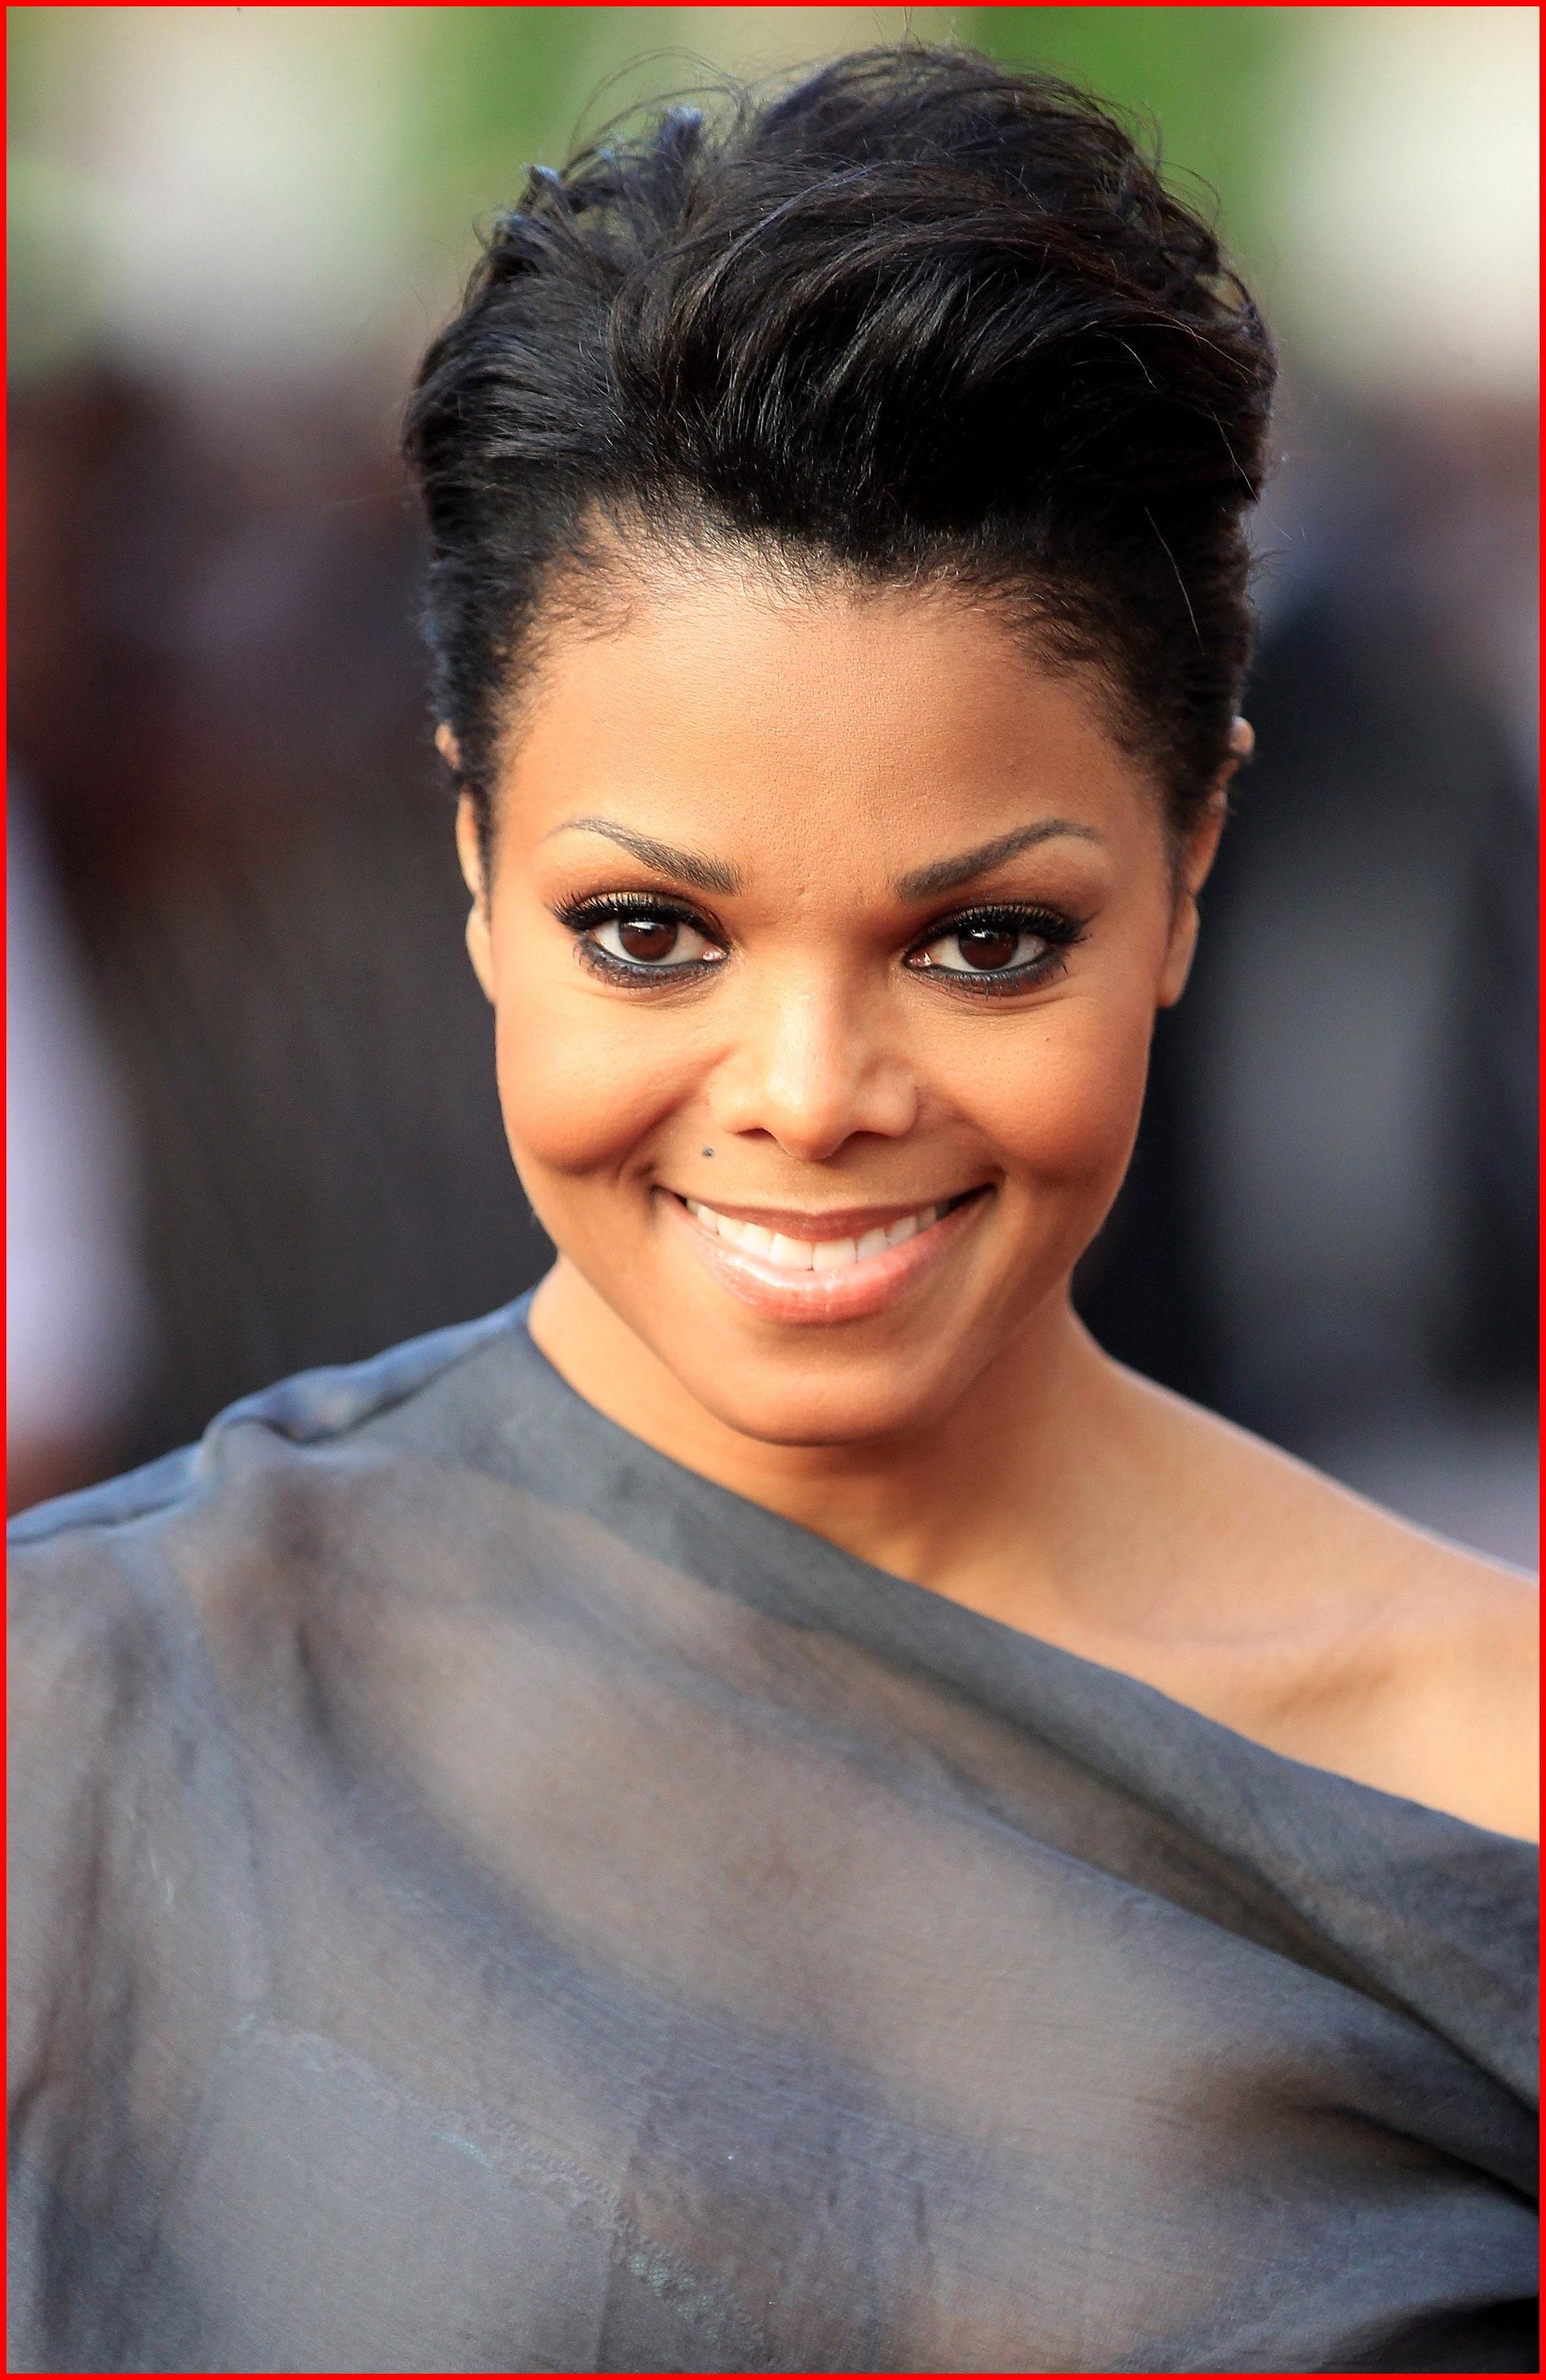 Black Girl Short Hairstyles 135834 Black Women Short Haircuts Pertaining To Very Short Haircuts For Black Women (View 3 of 25)